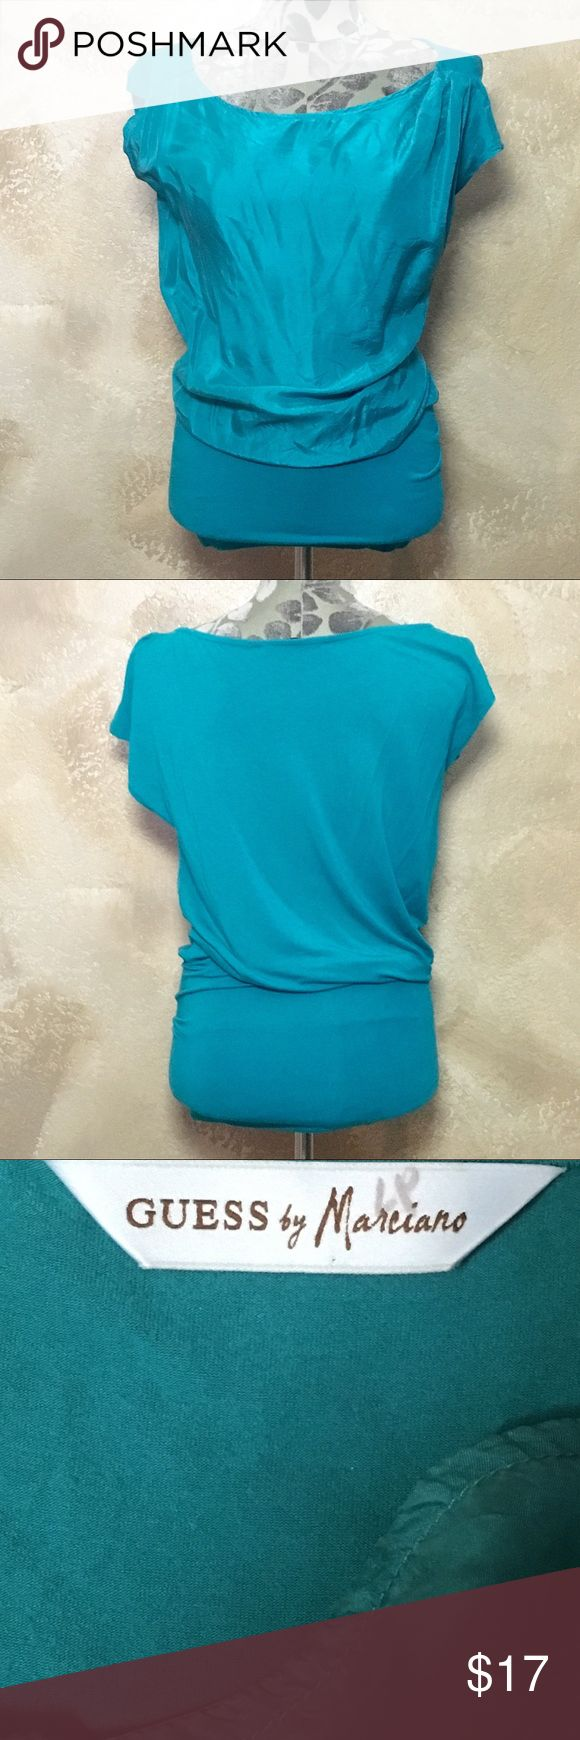 Guess Marciano Green Silky-Front Long Tunic Guess Marciano Green Silky-Front Long Tunic  Size: XS - Could fit S/M Measurements can be provided upon request   Fabric Content  95% Rayon 5% Spandex  Features ✨ •Comfortable, soft, and stretchy  •Quality material that's made to last •Elastic thick hem •Silk-like front   •EUC  Get 15% off when you buy 3+ items plus save on shipping!  Thanks for looking  Guess by Marciano Tops Tunics